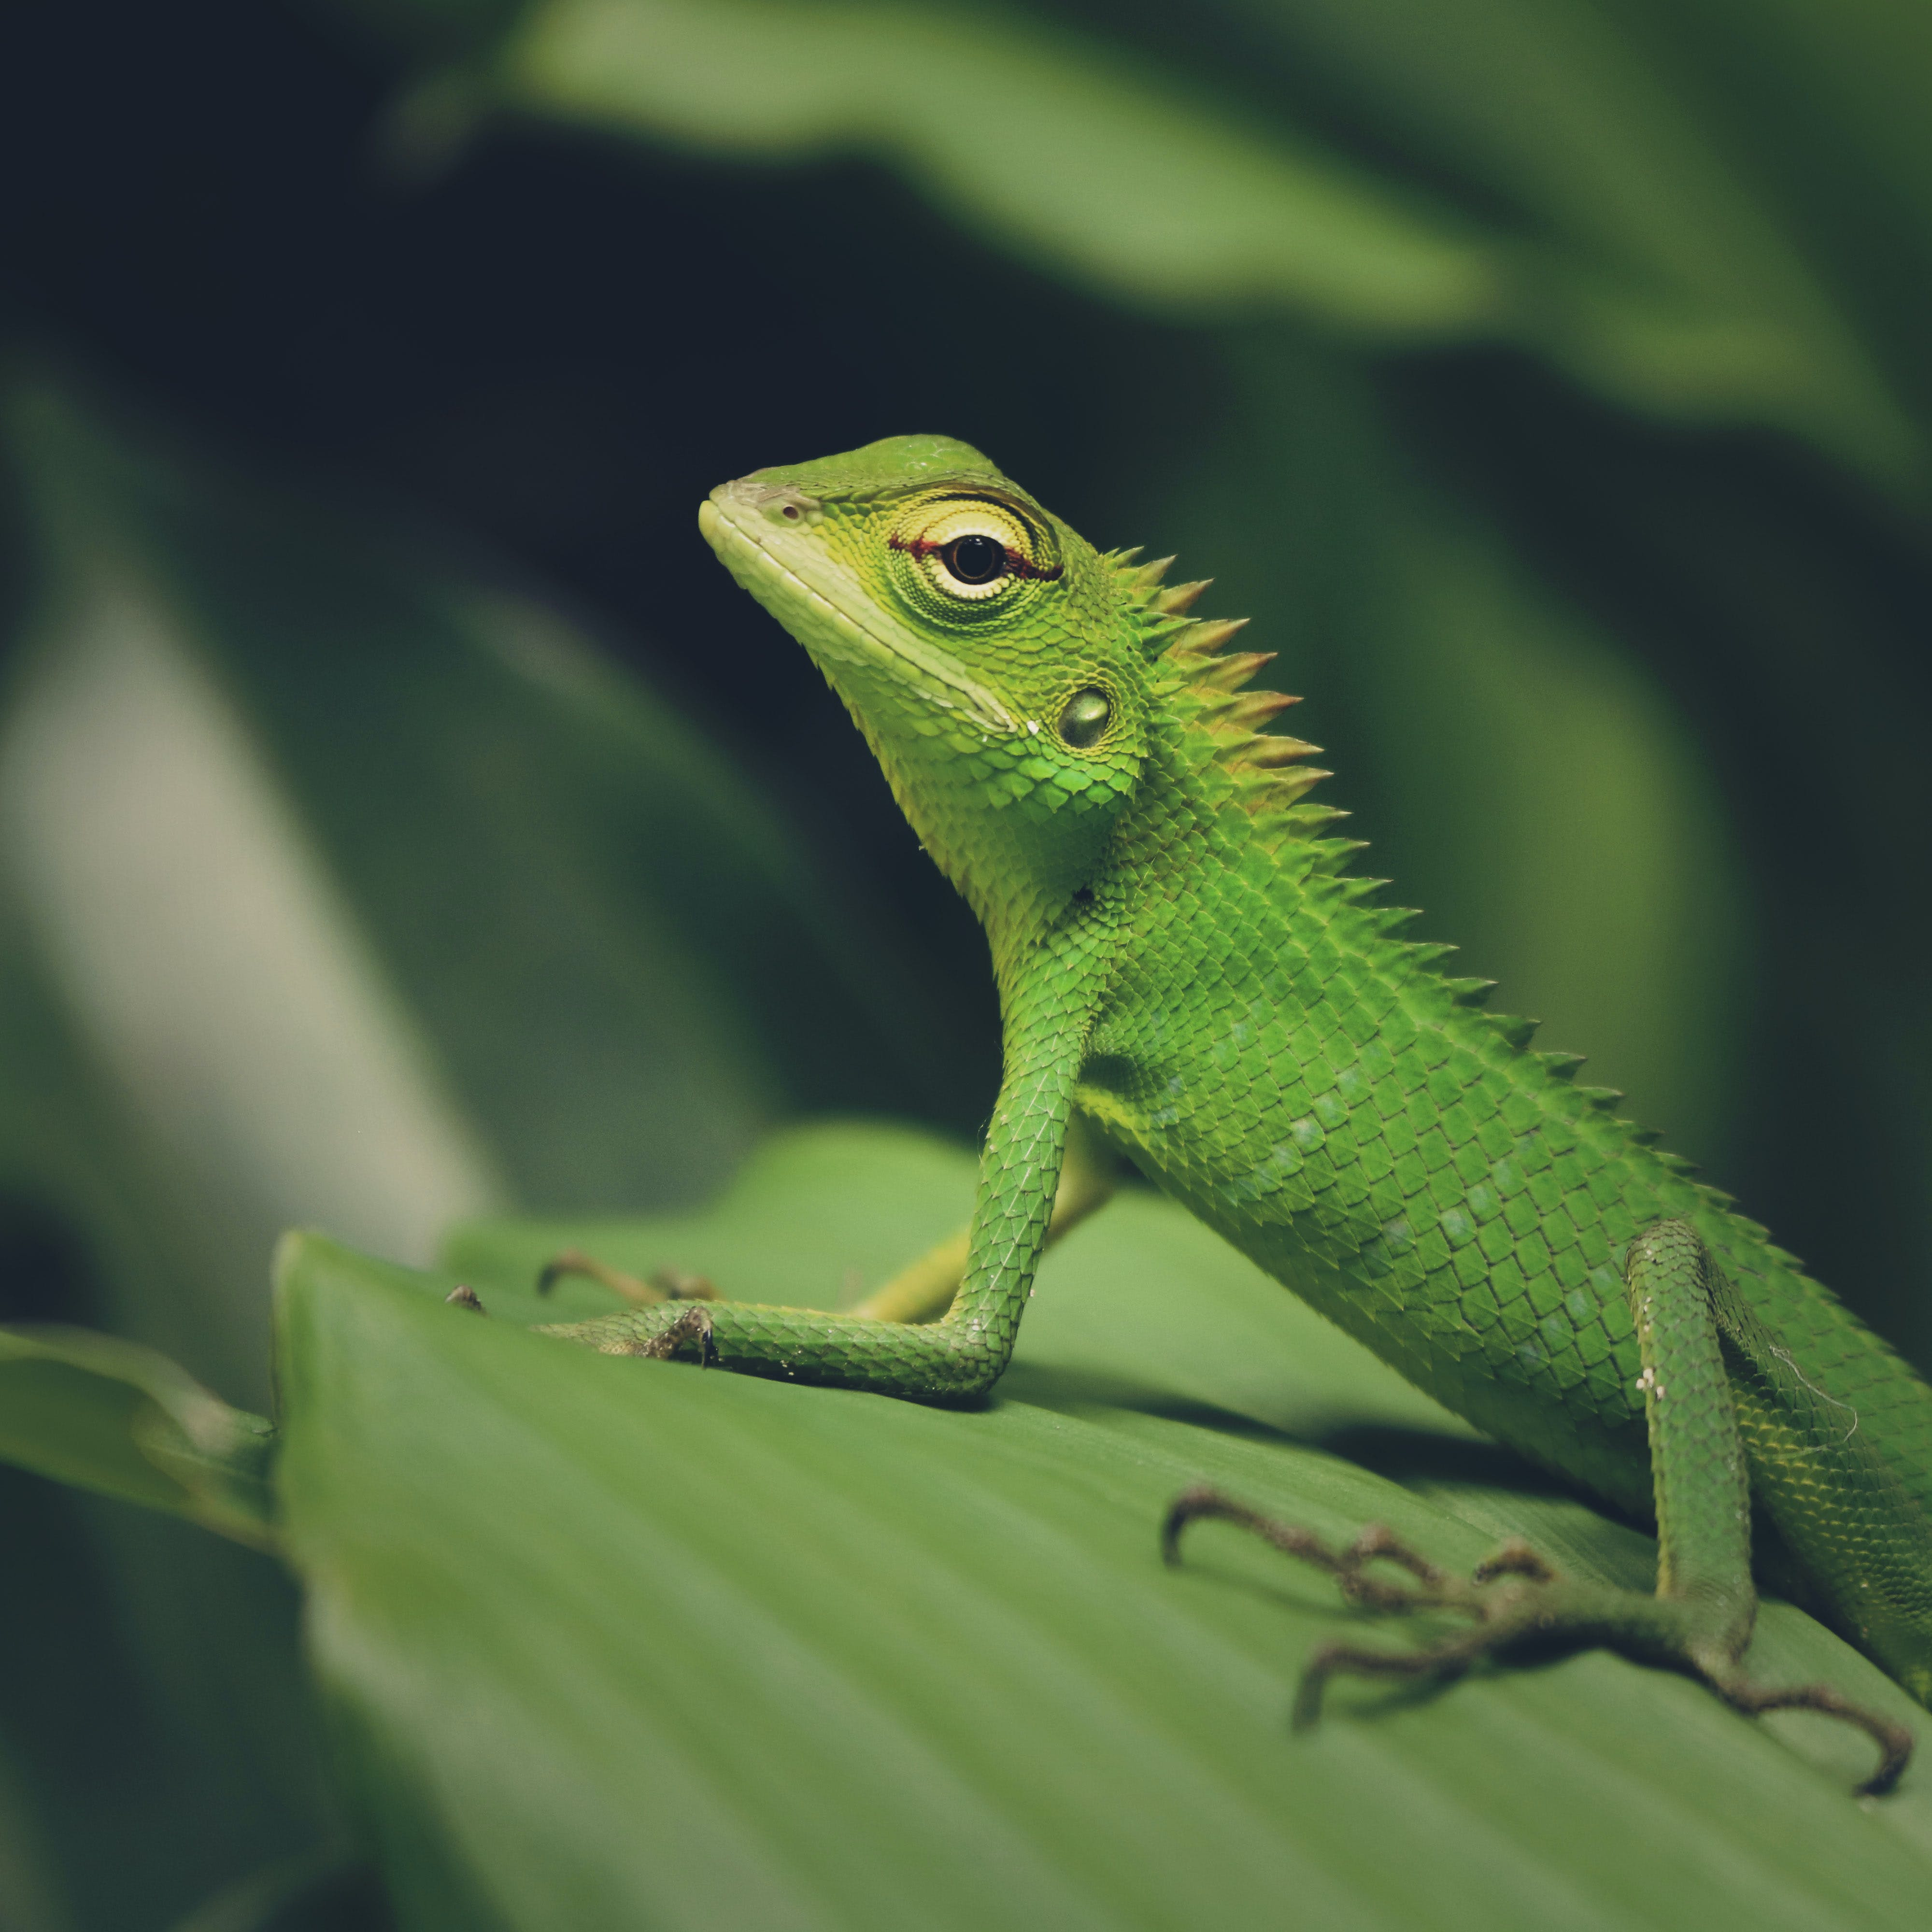 Macro Photography of Green Crested Lizard